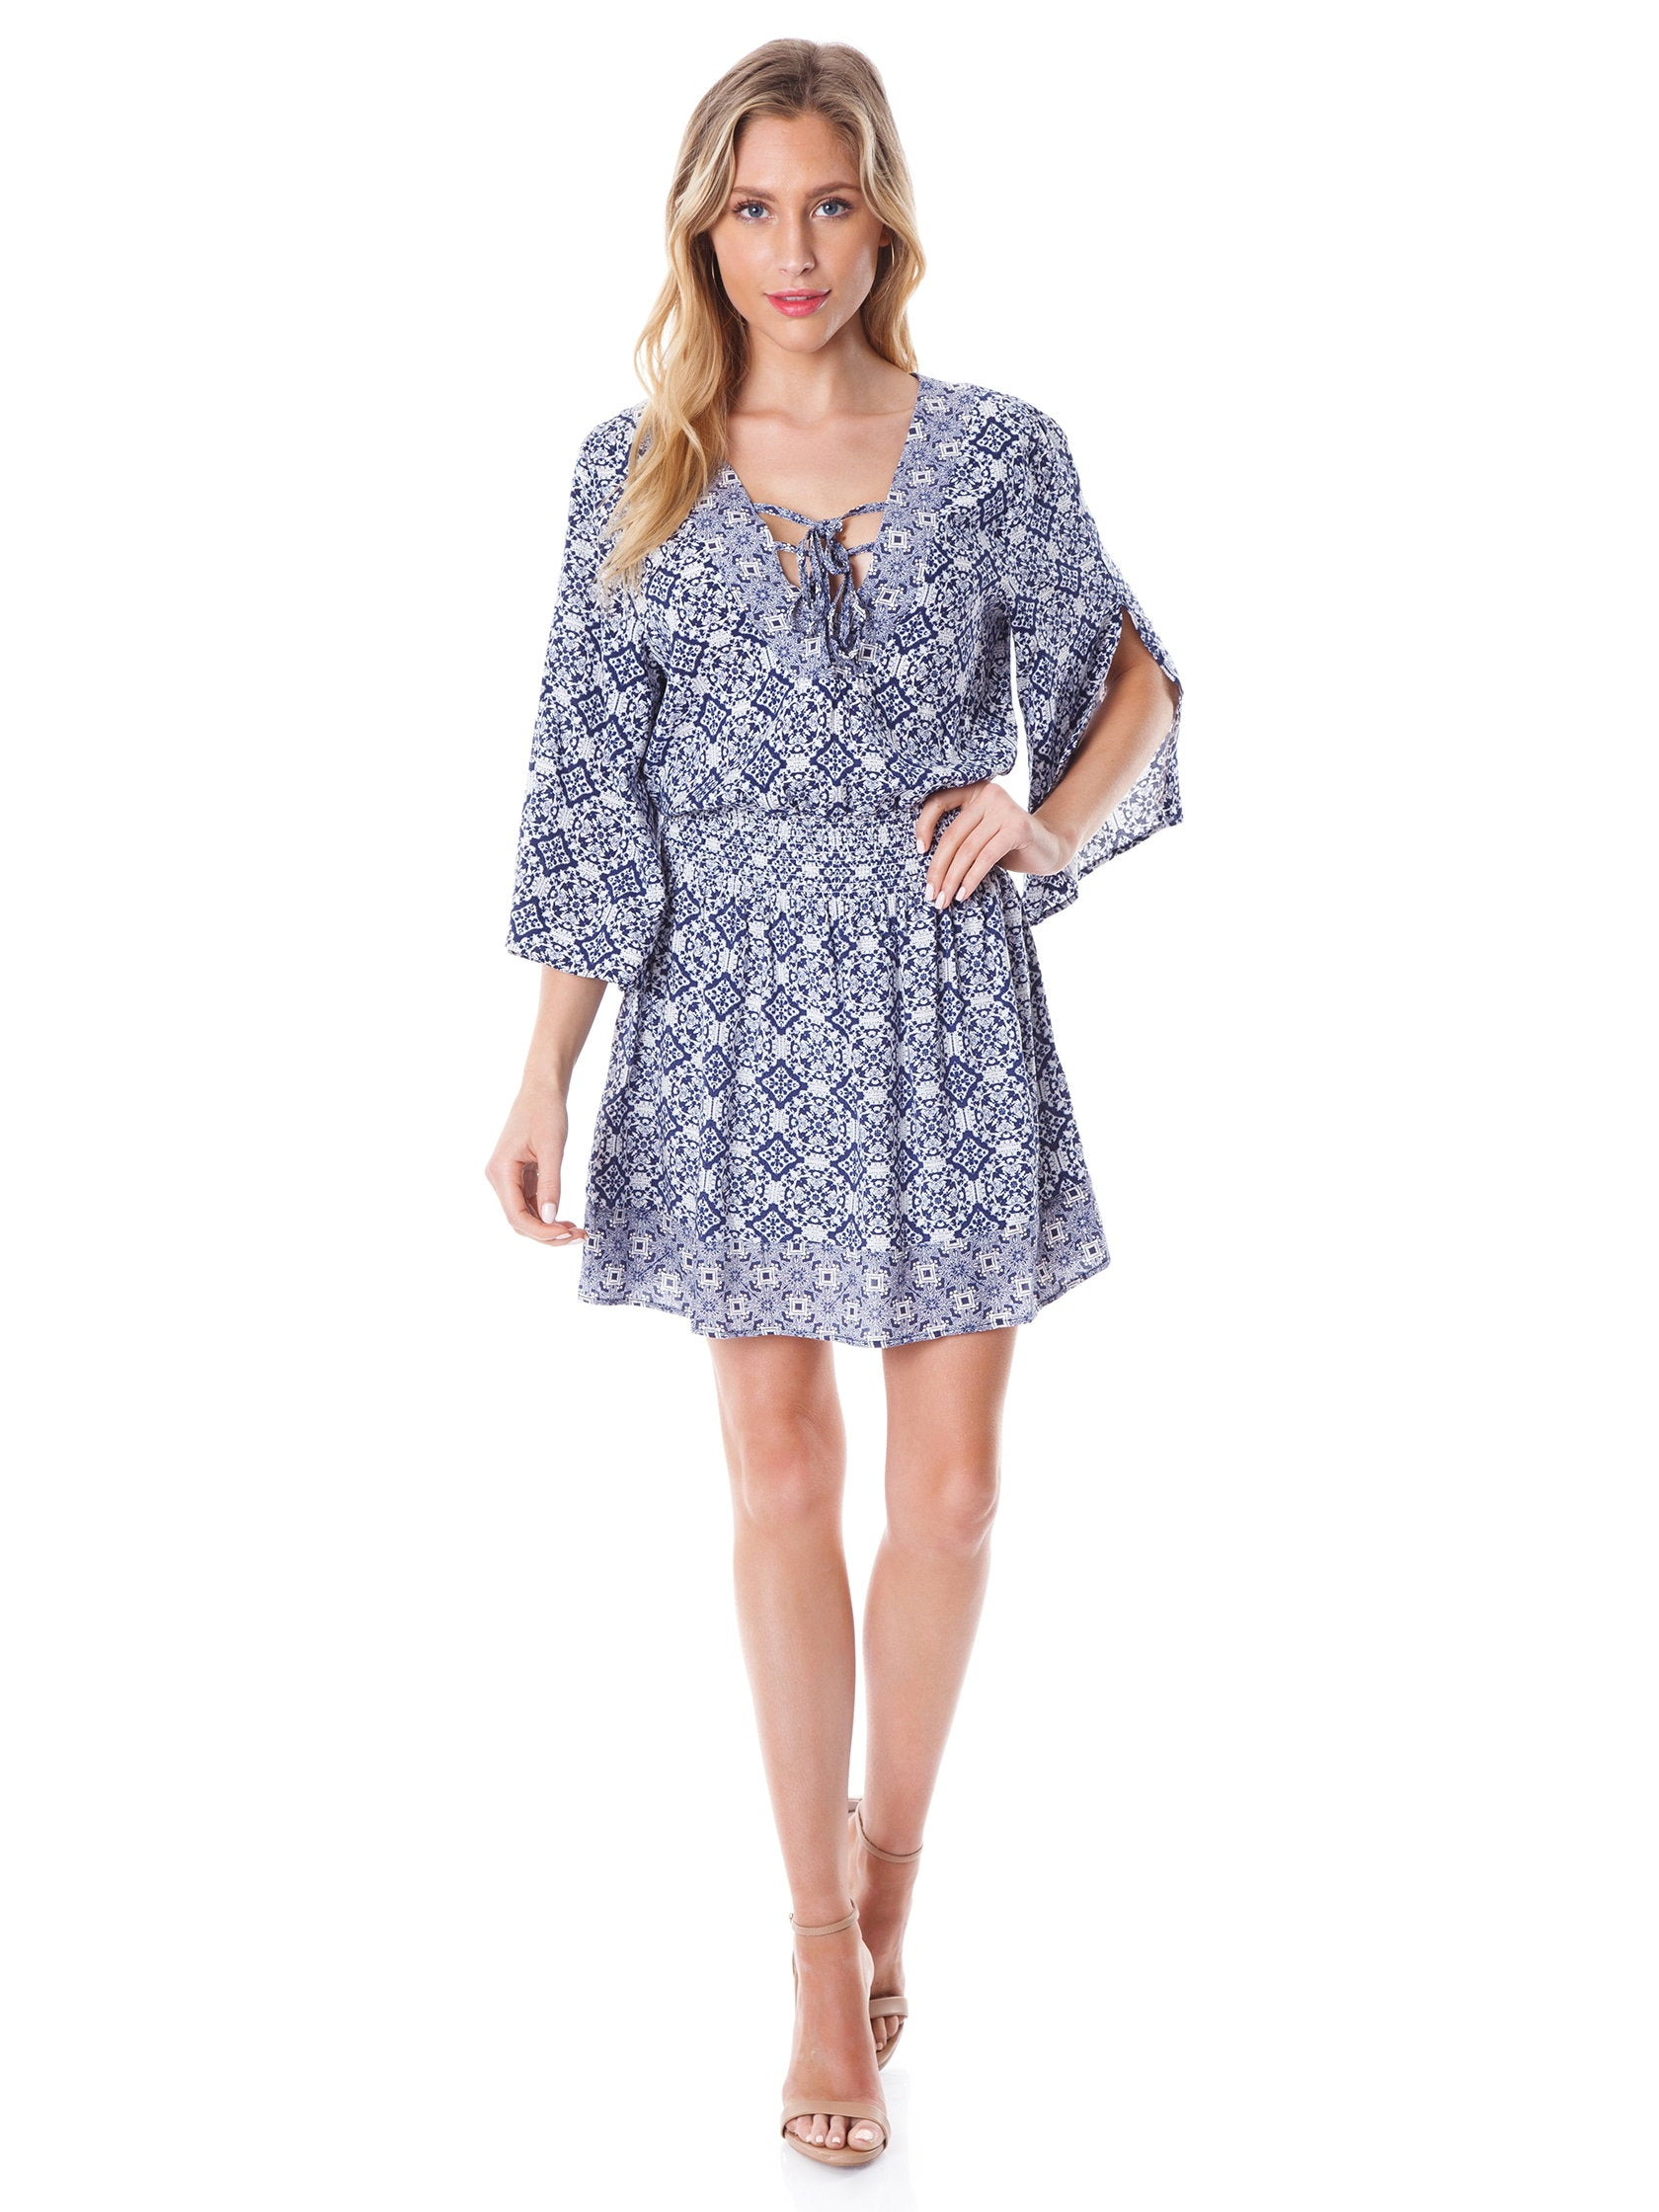 Women outfit in a dress rental from BB Dakota called Saylor Printed Dress